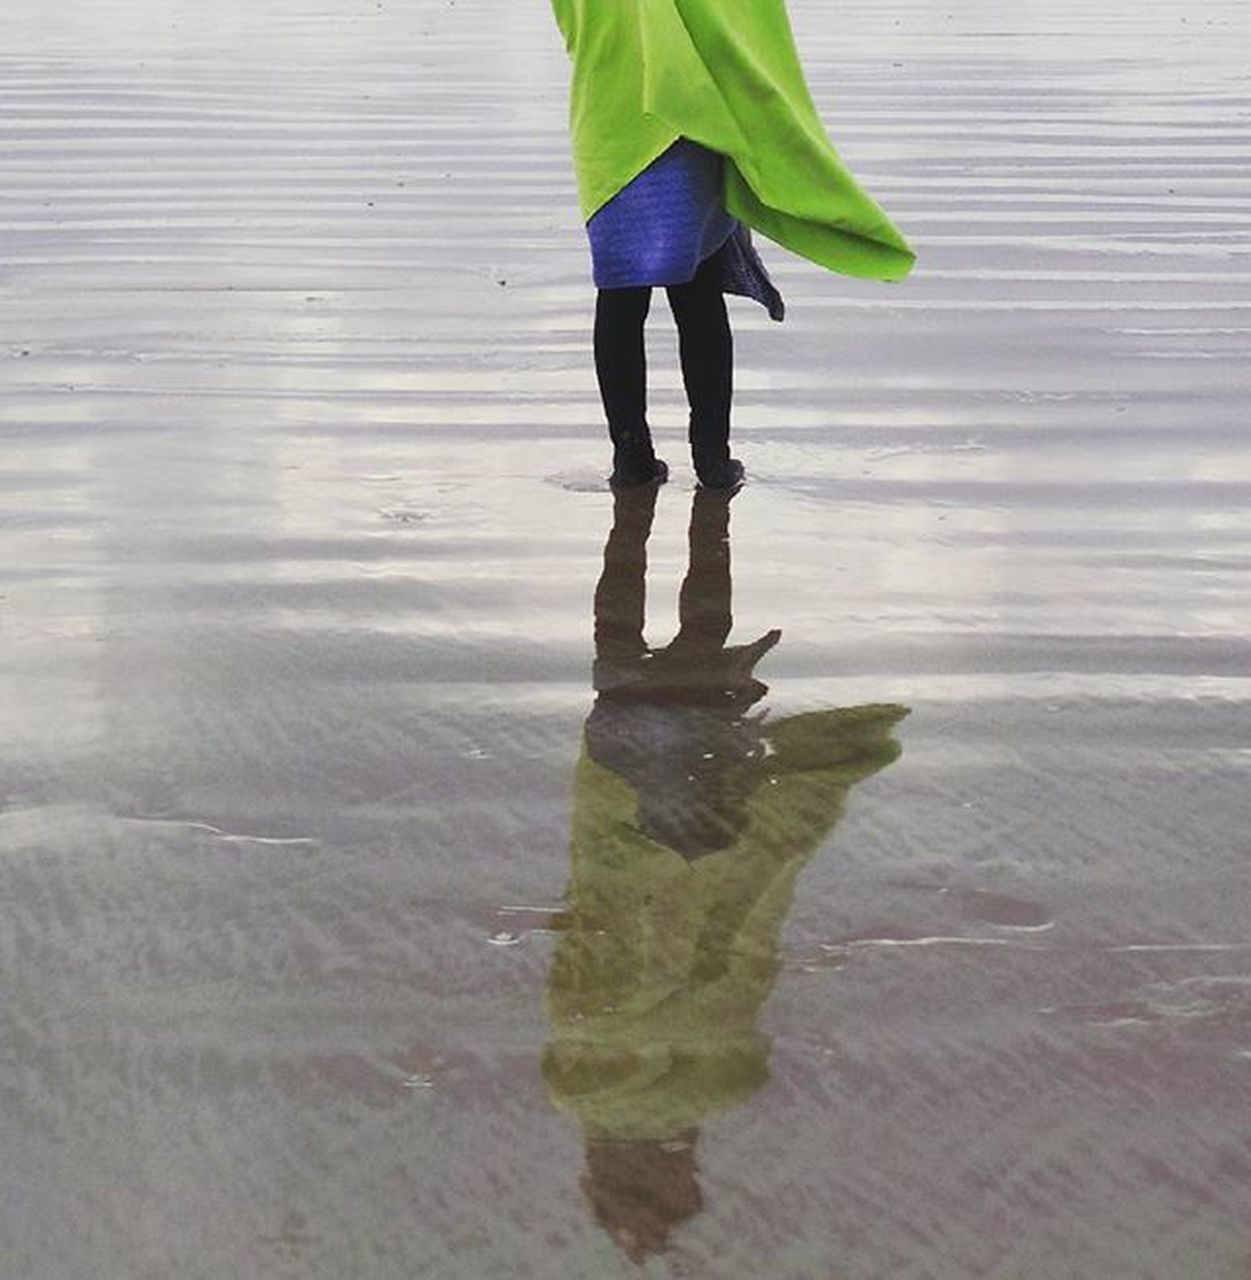 water, walking, real people, low section, reflection, one person, wet, outdoors, standing, leisure activity, day, lifestyles, childhood, beach, nature, people